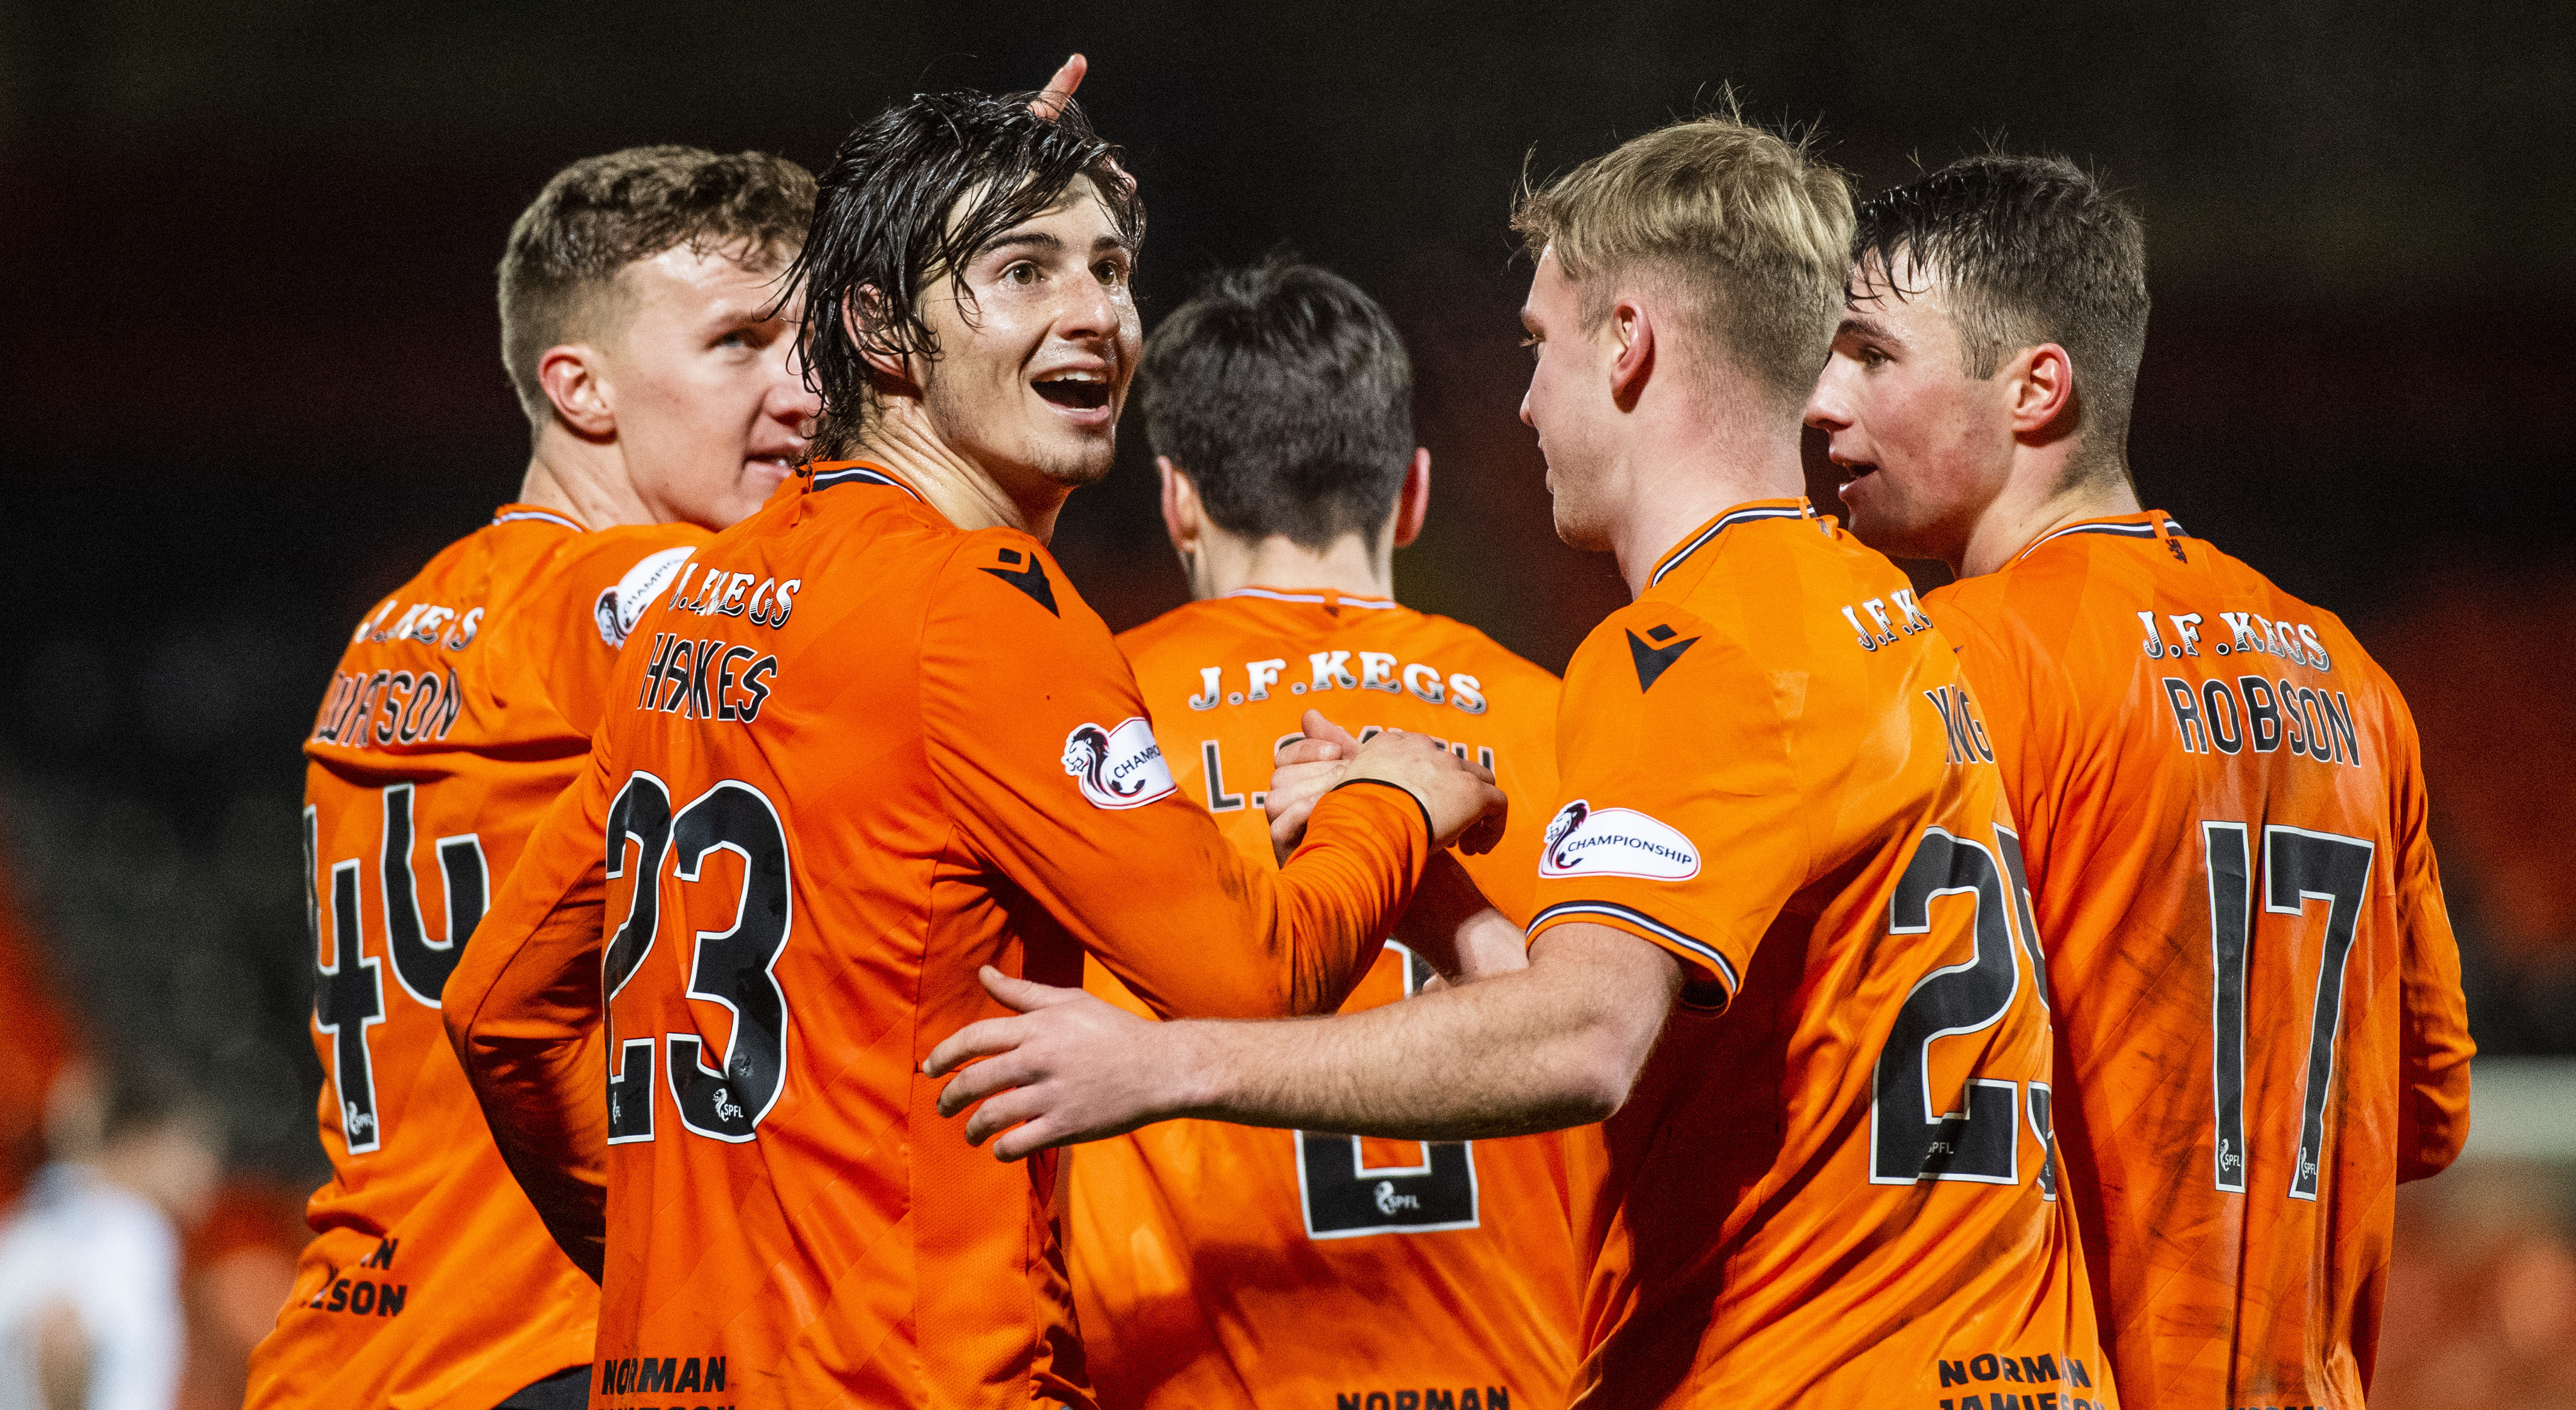 Ian Harkes (number 23) celebrates his goal with his teammates.